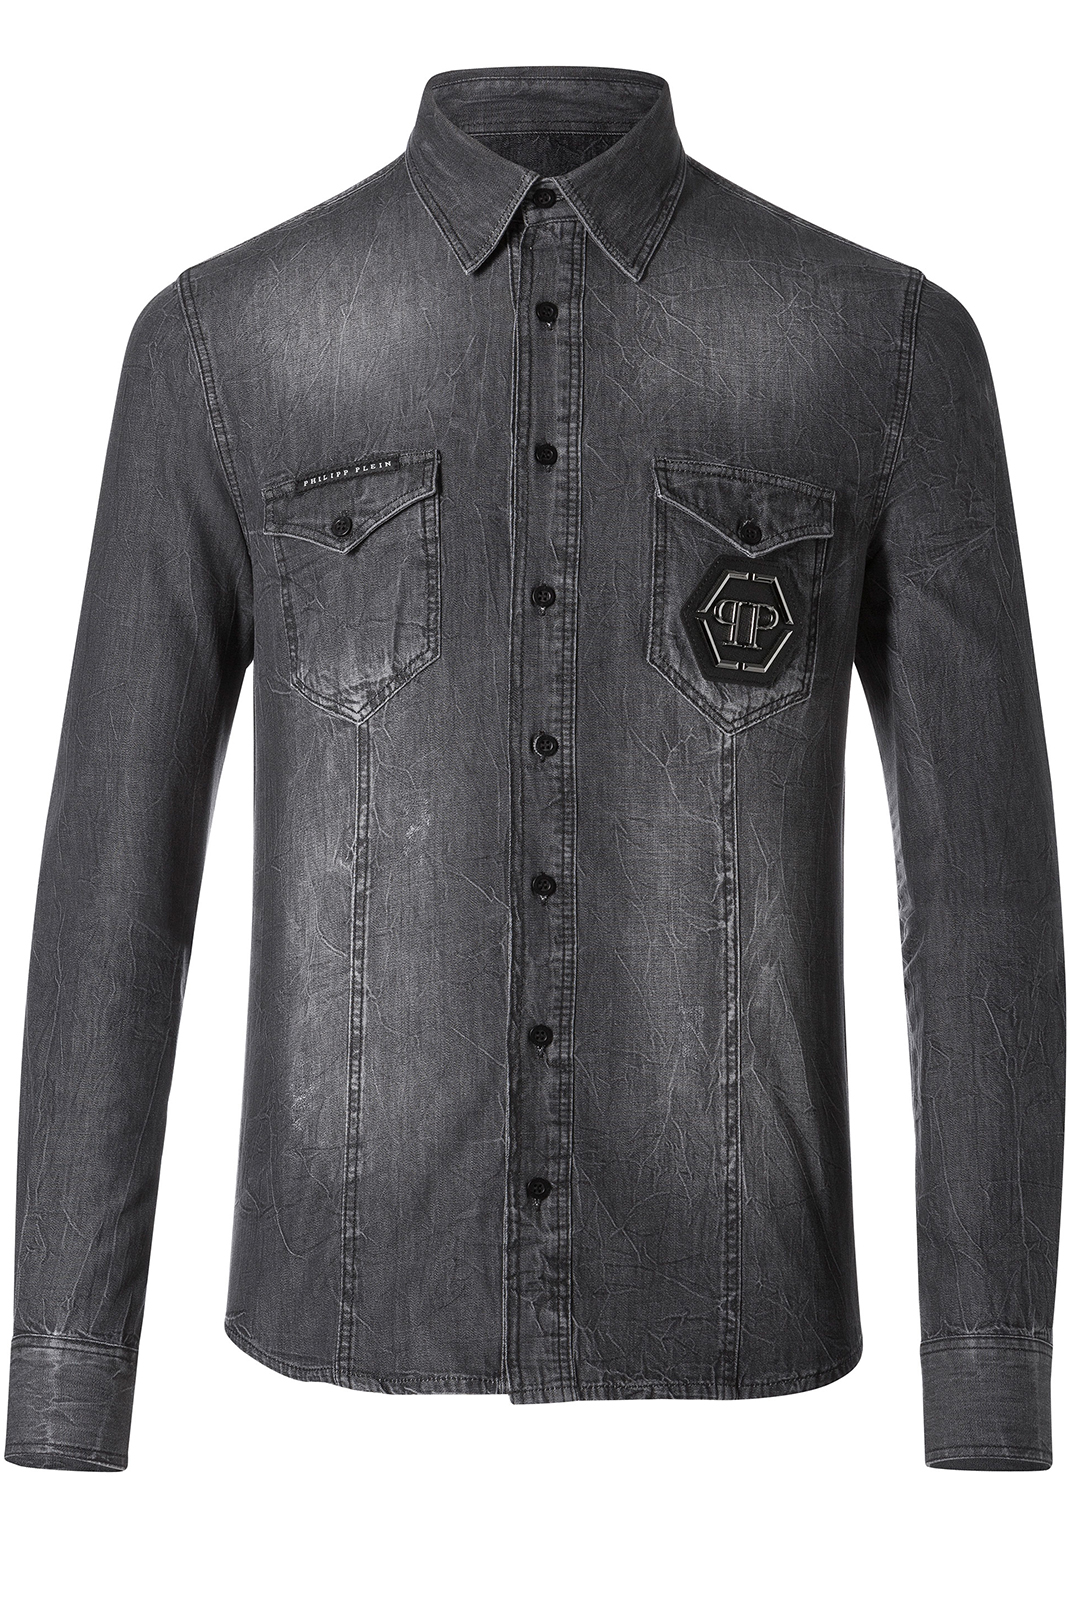 Chemises manches longues  Philipp plein MDP0036 FULL GRIS FONCE